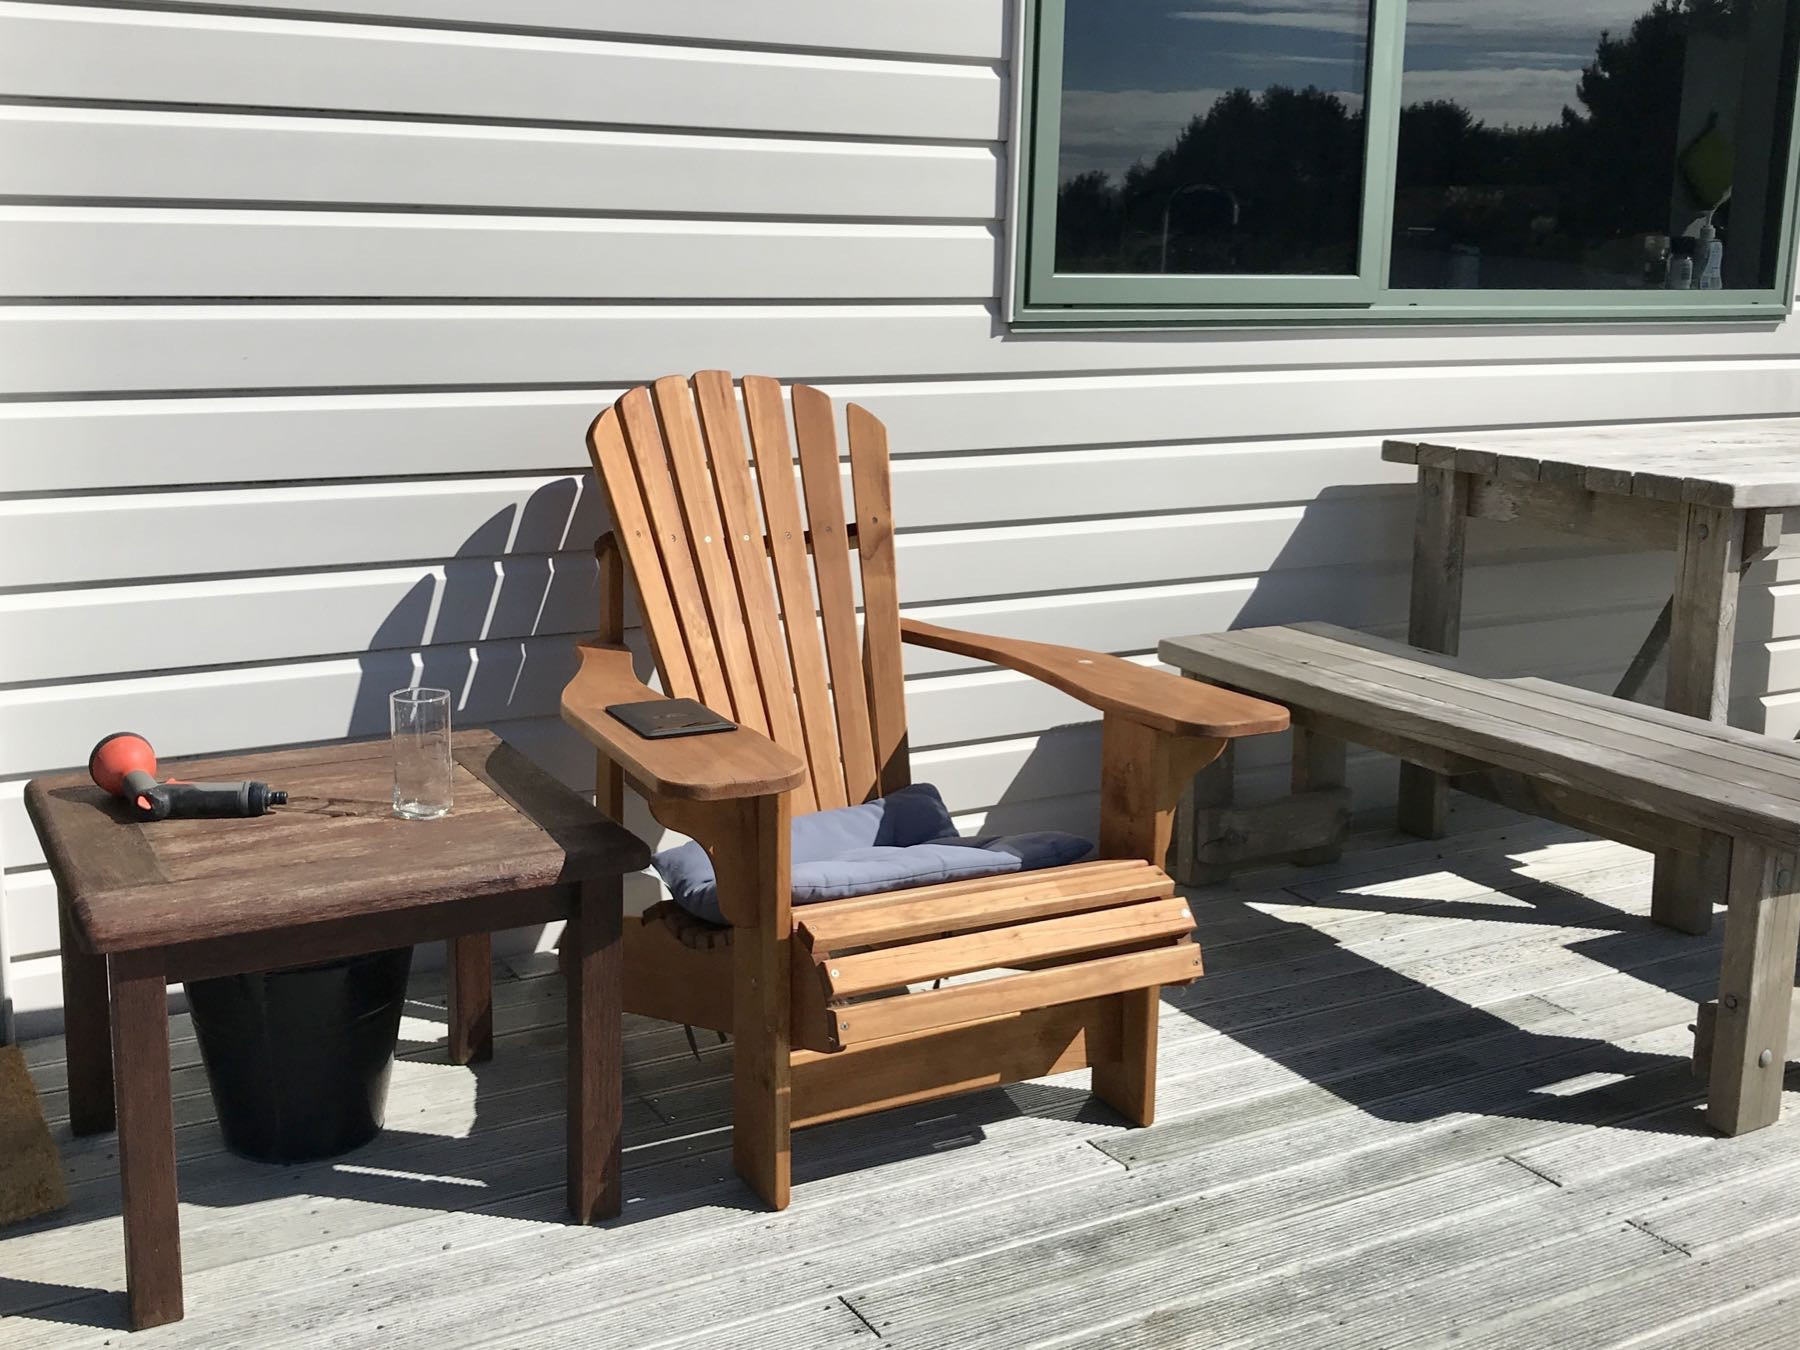 Adirondack style chair, with coffee table and Kindle.